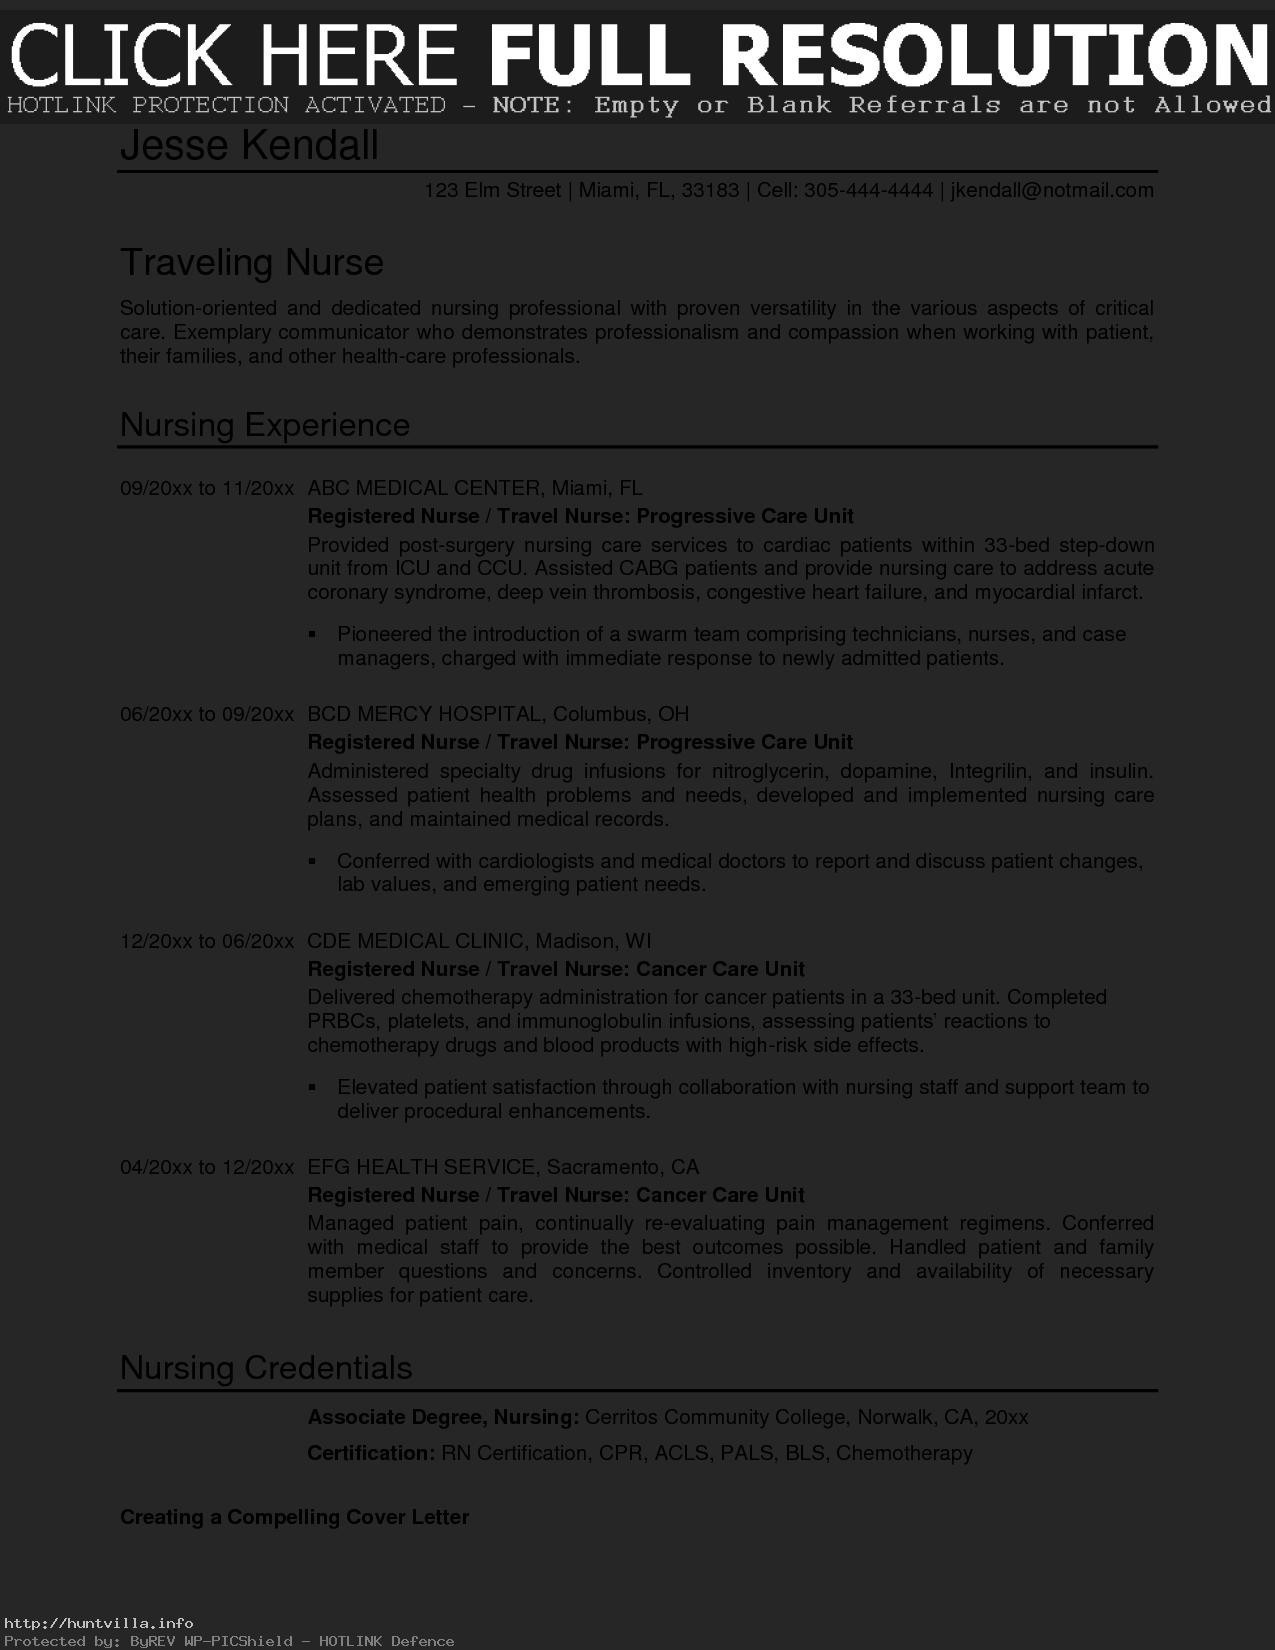 Resume for Med Surg Nurse - 25 Cath Lab Nurse Resume